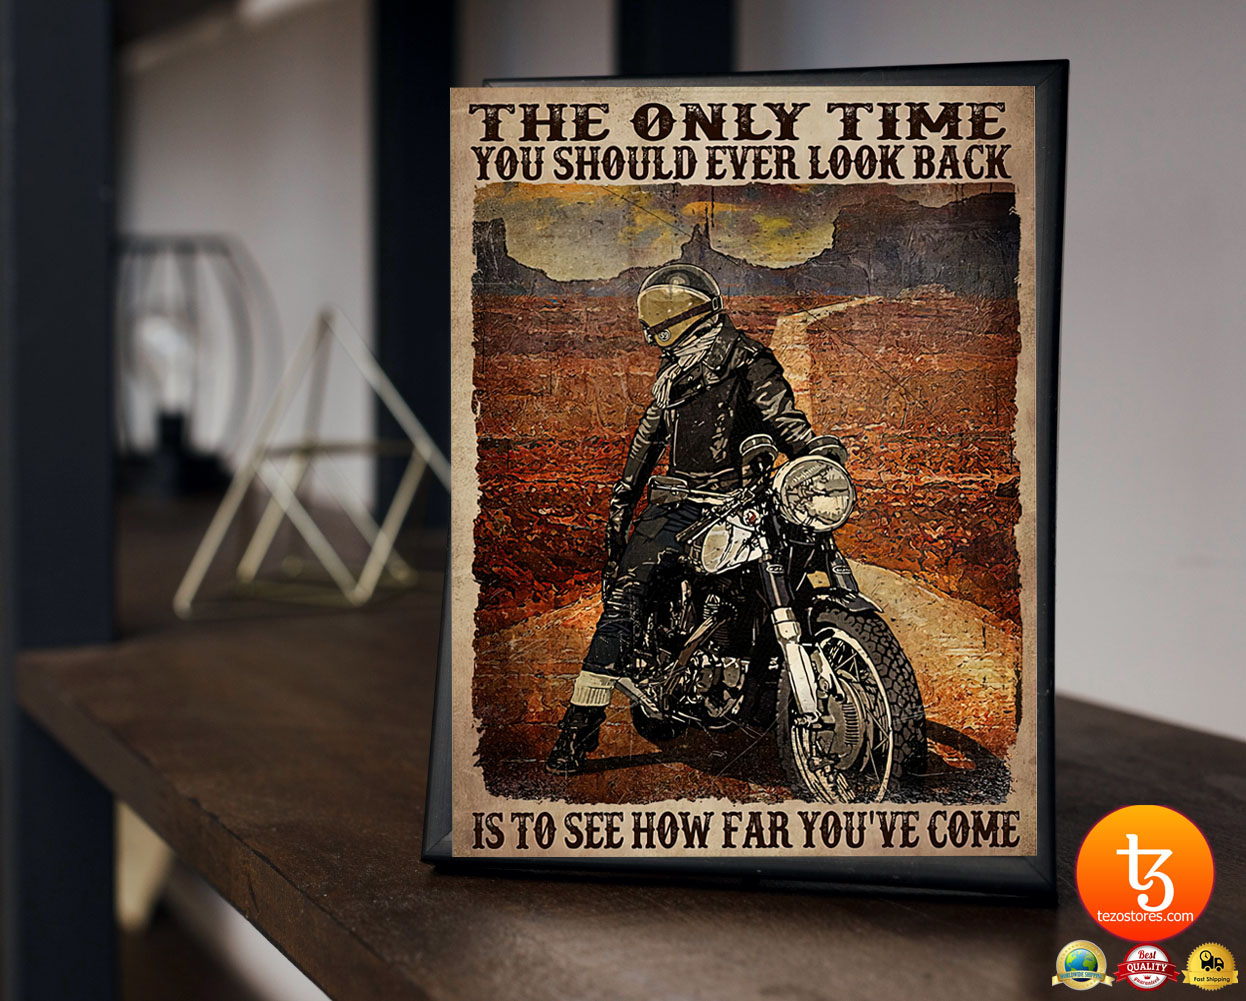 Motorcycle The only time you should ever look back is to see how far you've come poster 2